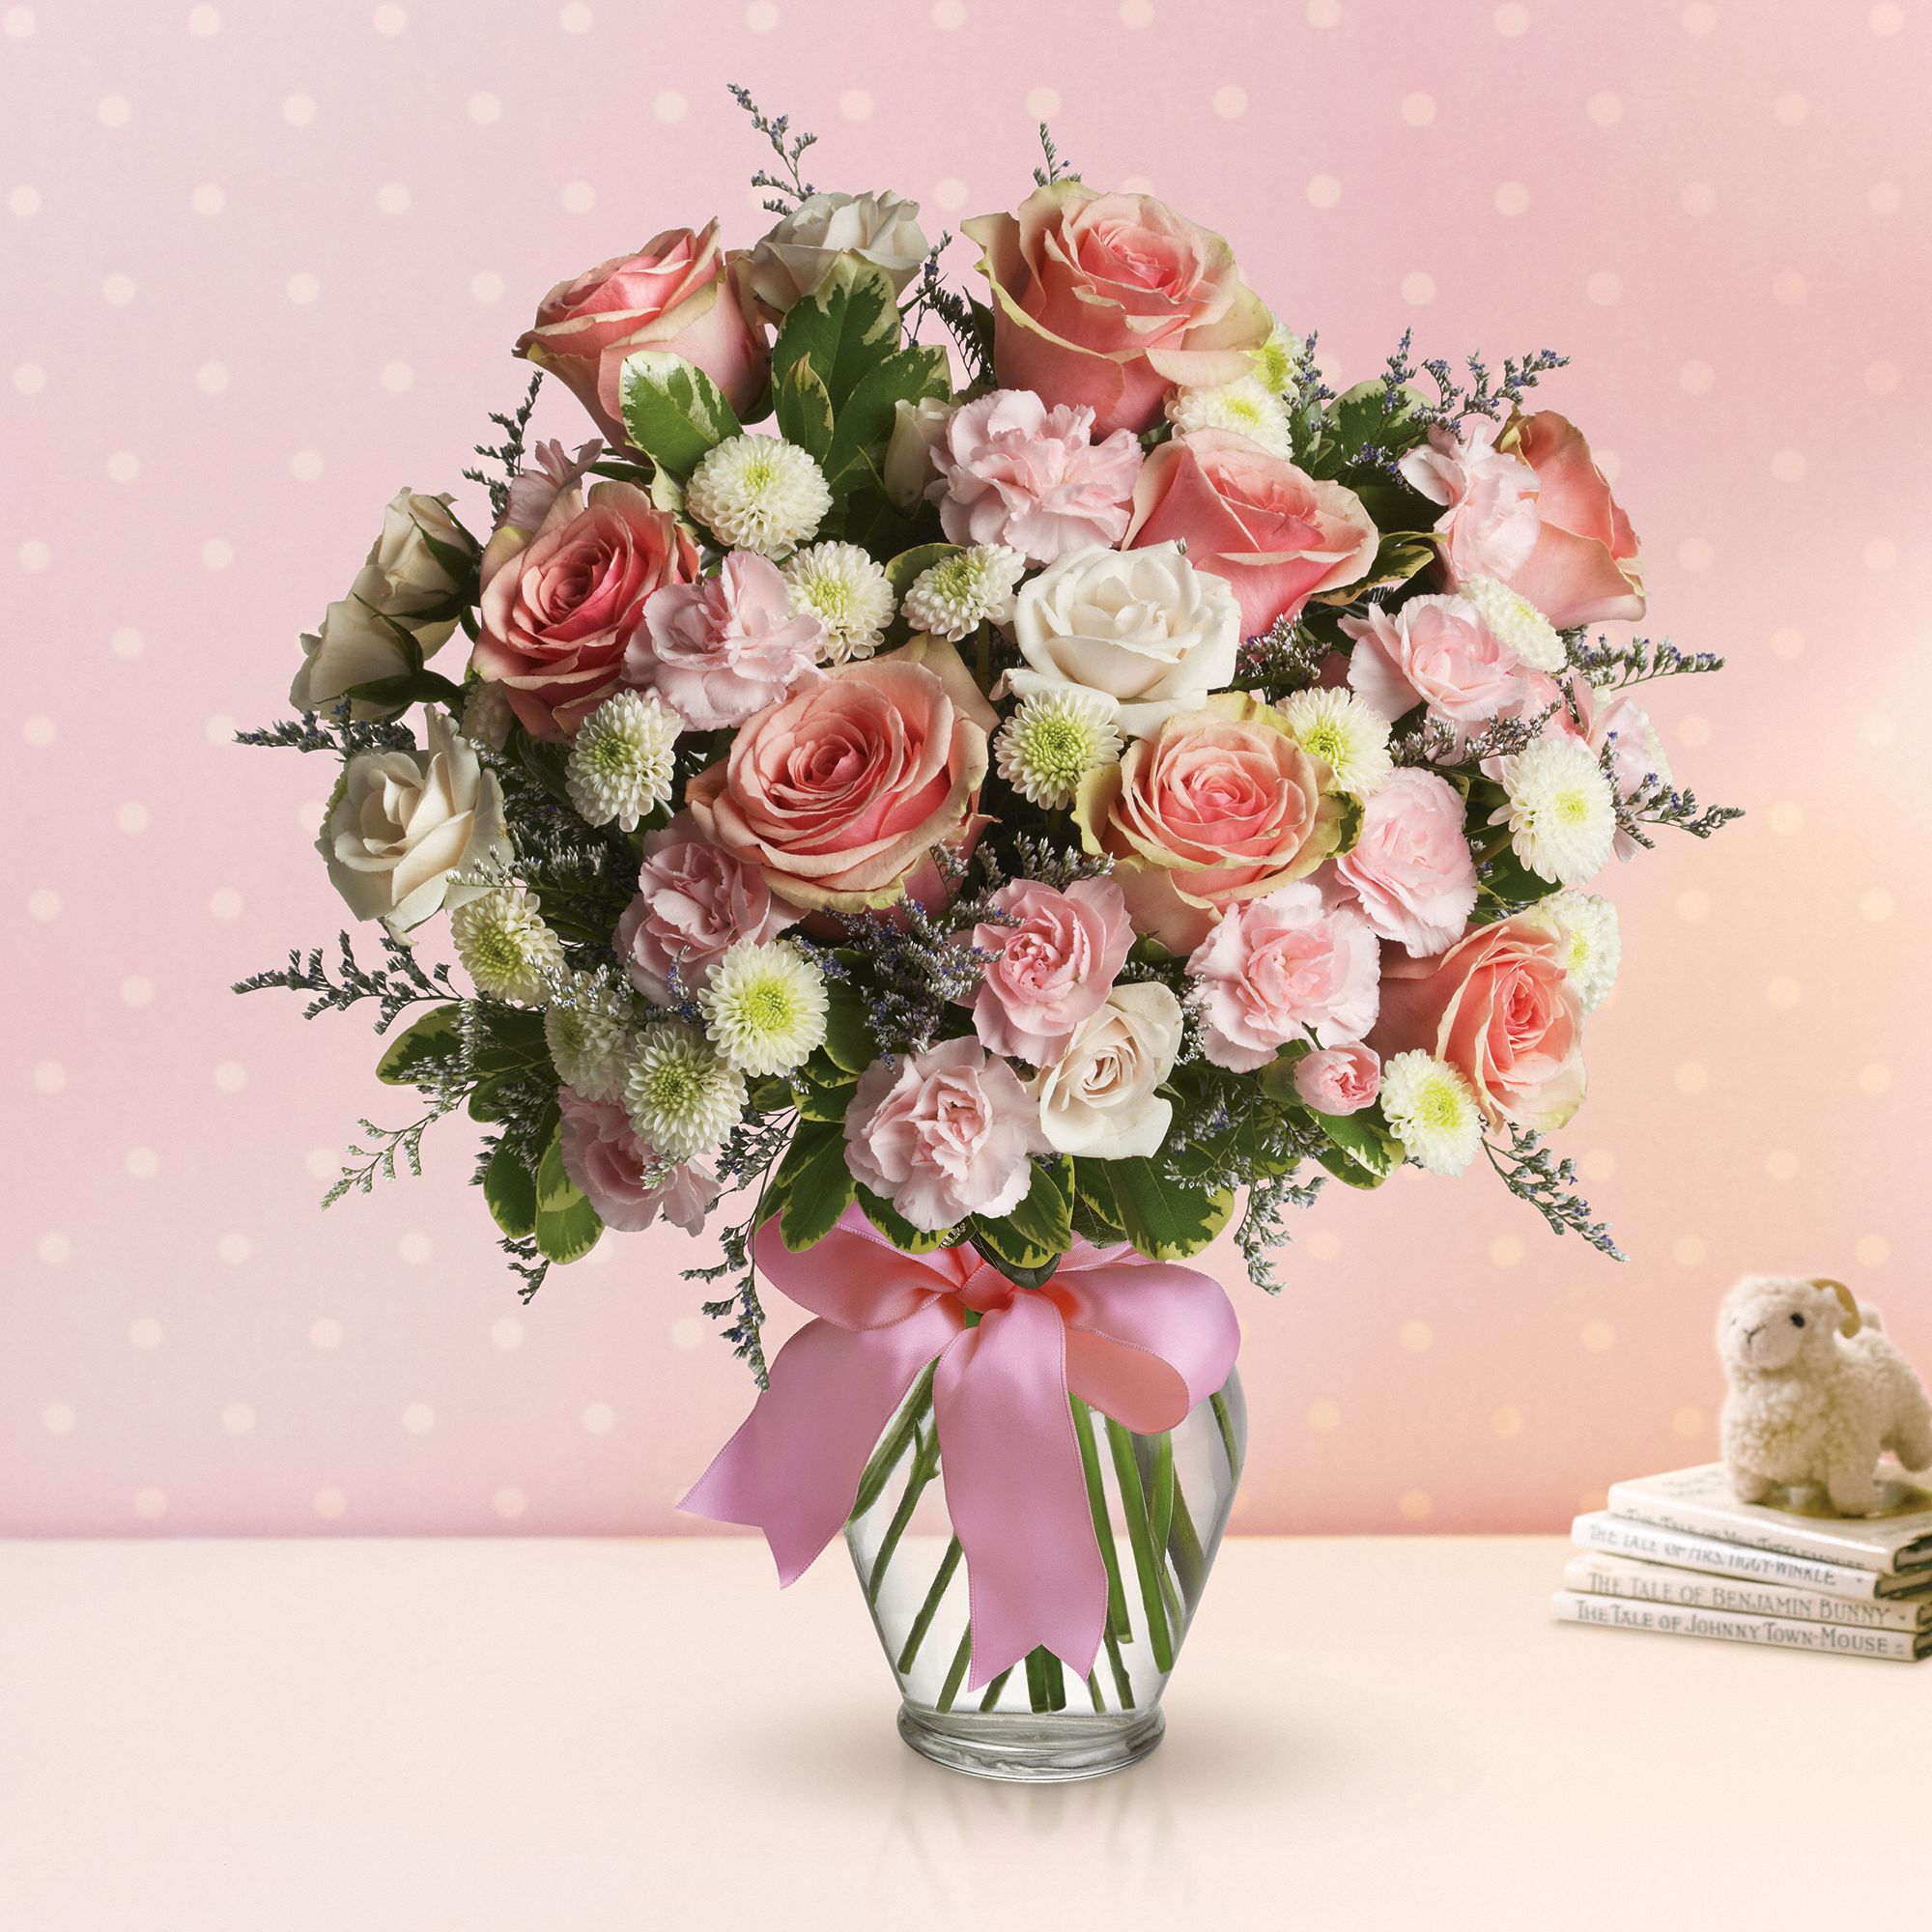 Cotton Candy bouquet - pink and white flowers including roses, miniature carnations and button spray chrysanthemums.